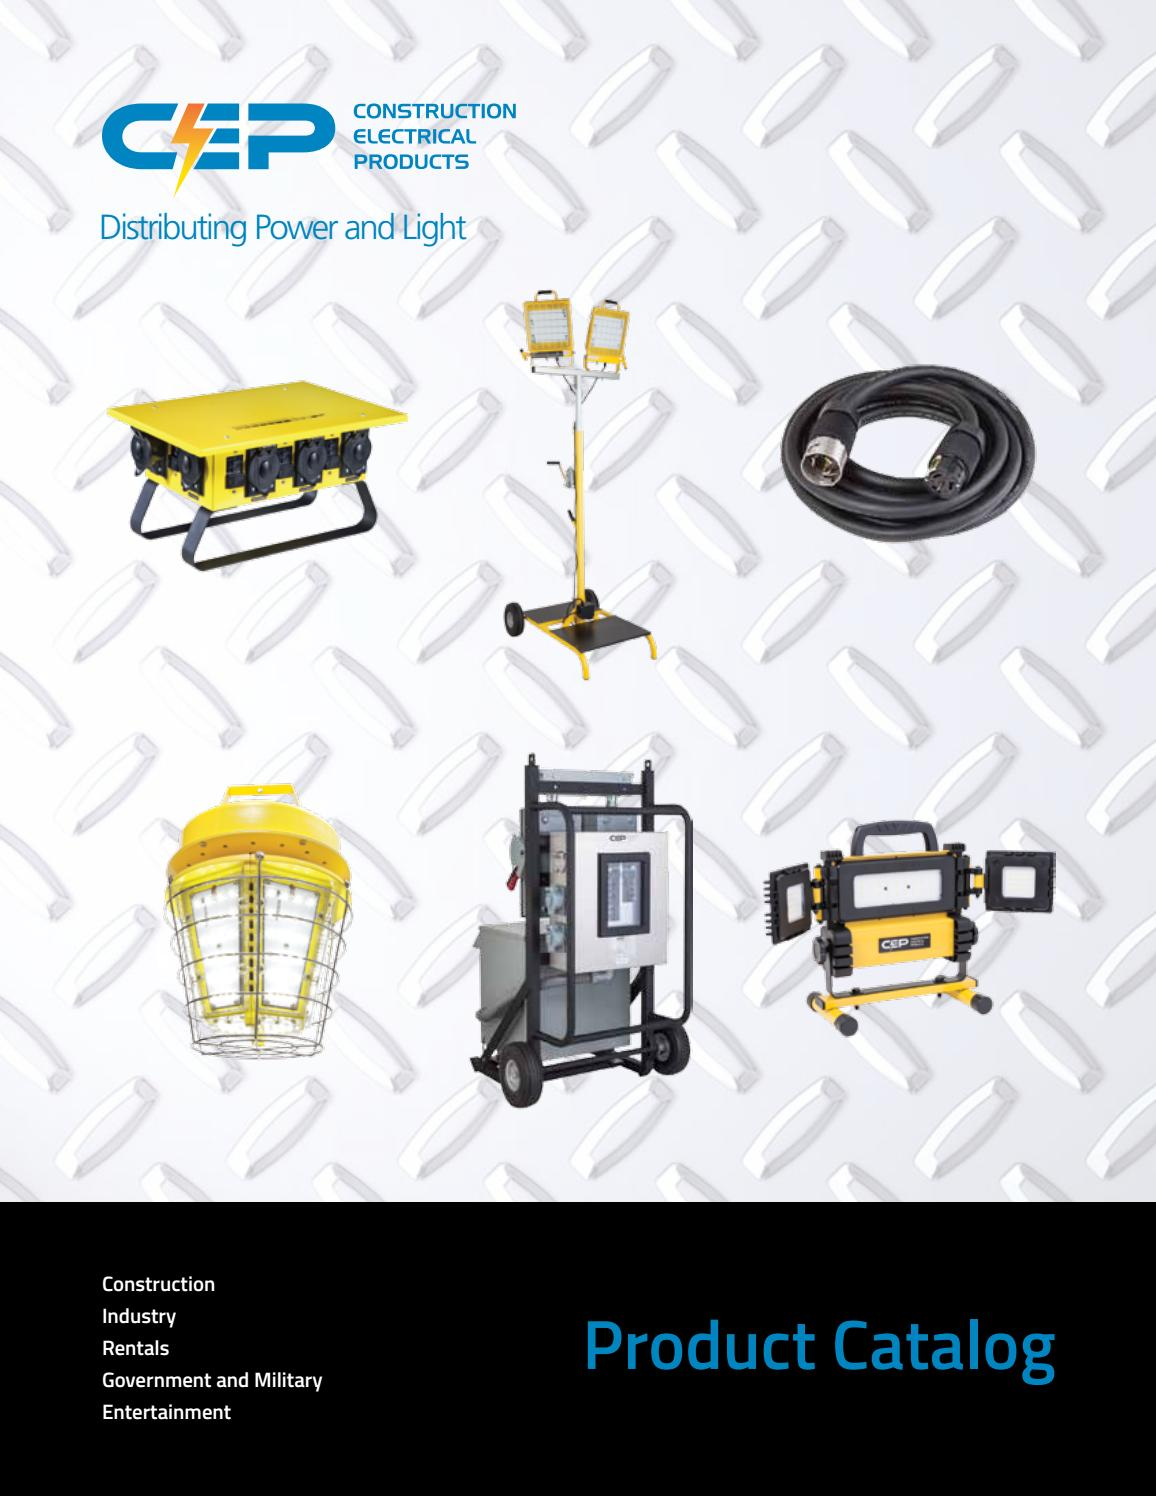 hight resolution of construction electrical products distributing power and light